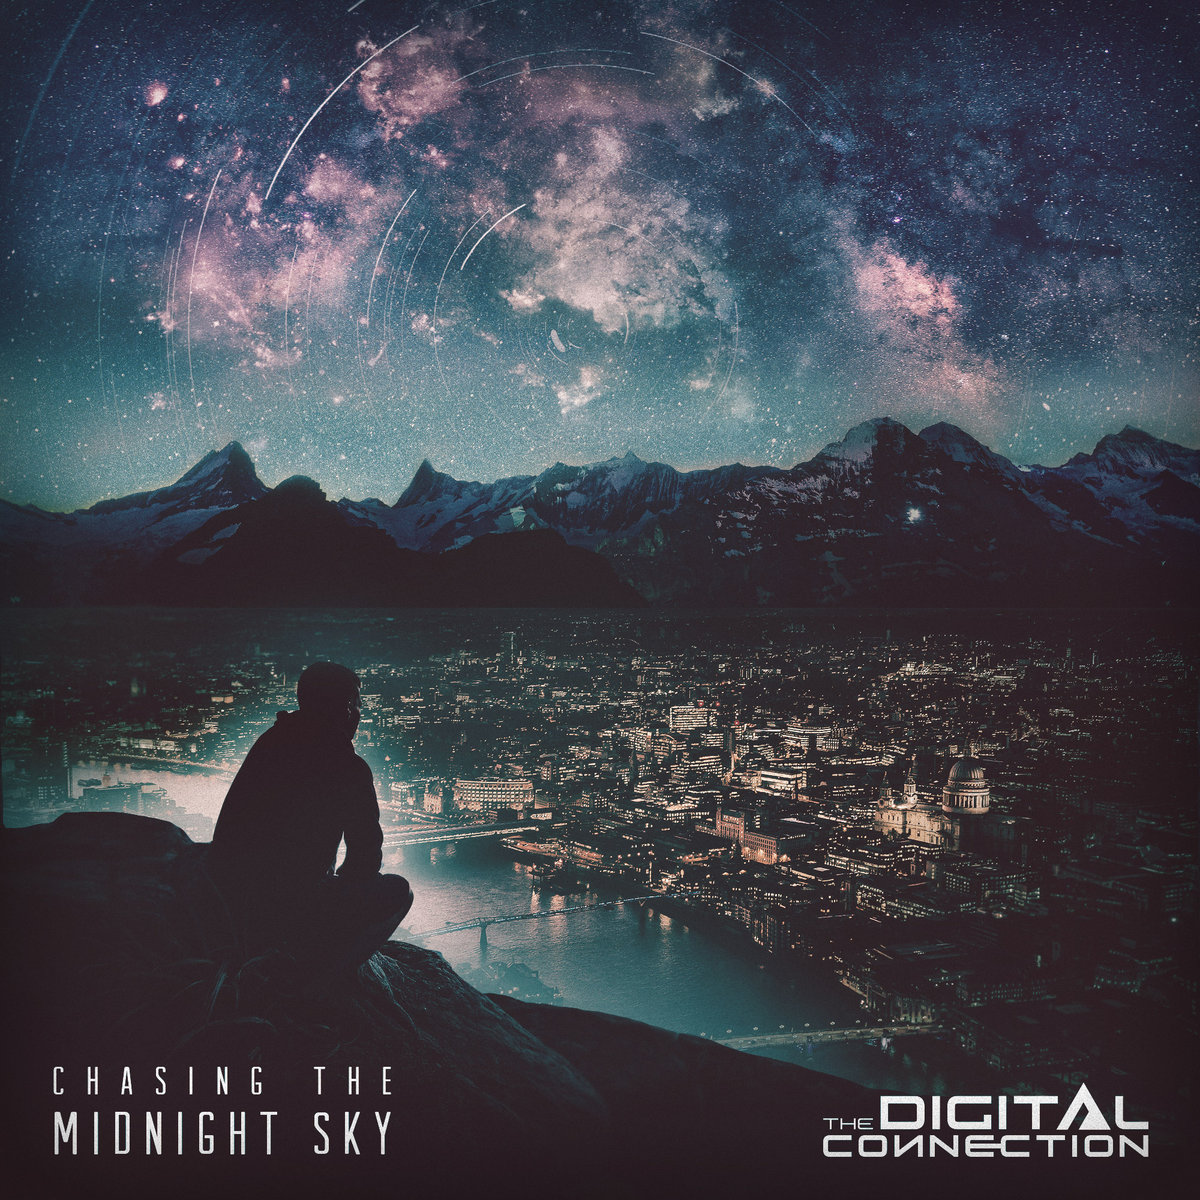 The Digital Connection - Inevitable Transition @ 'Chasing The Midnight Sky' album (colorado, idm)